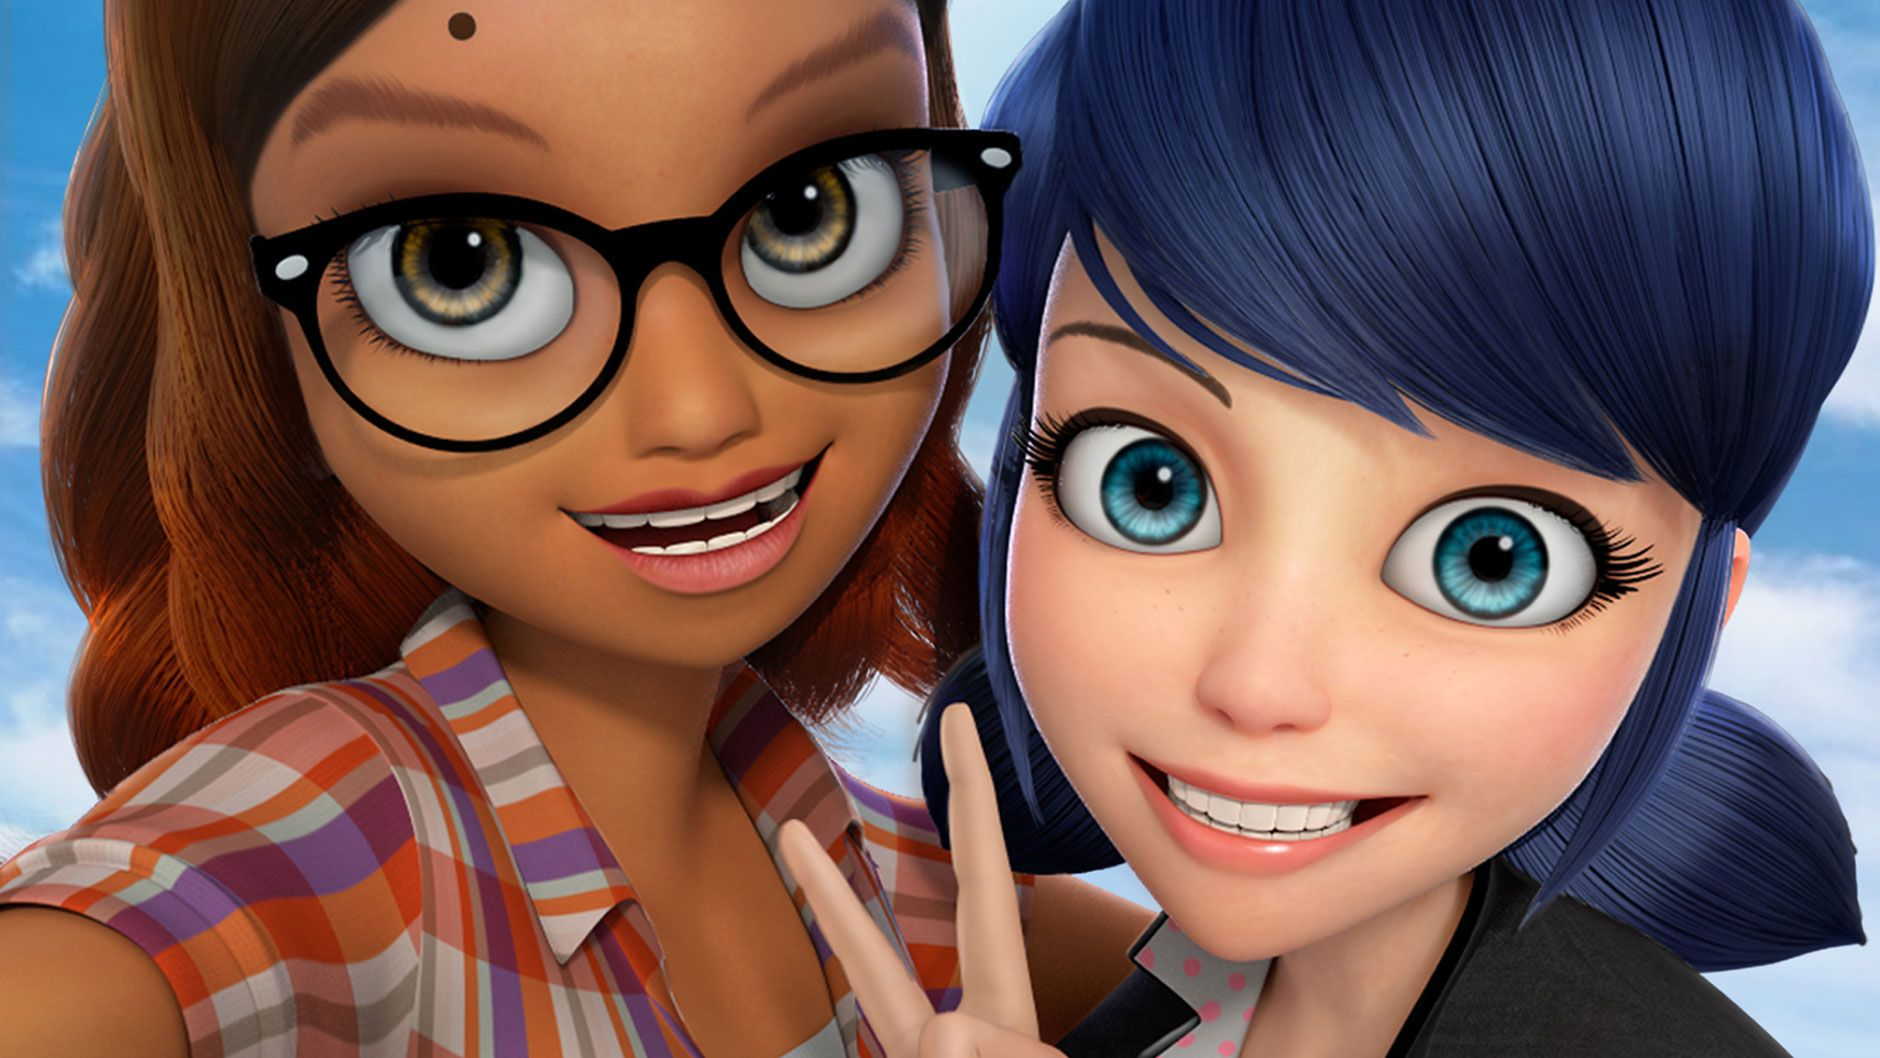 Pin By Maria Jose On Miraculous Tales Of Ladybug And Cat Noir Miraculous Ladybug Wallpaper Miraculous Ladybug Comic Ladybug Wallpaper